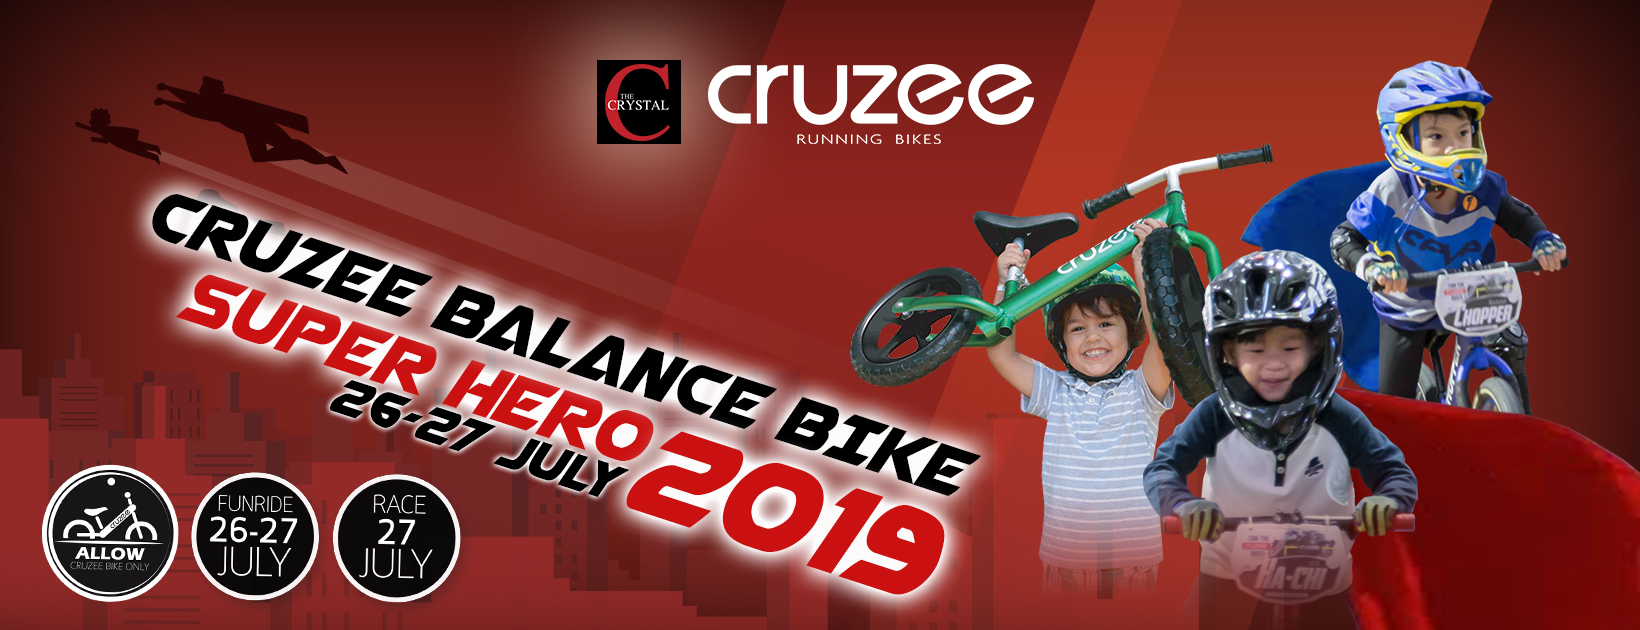 Super Hero Balance Bike Racing & Fashion Contest by The Crystal Ratchapruek